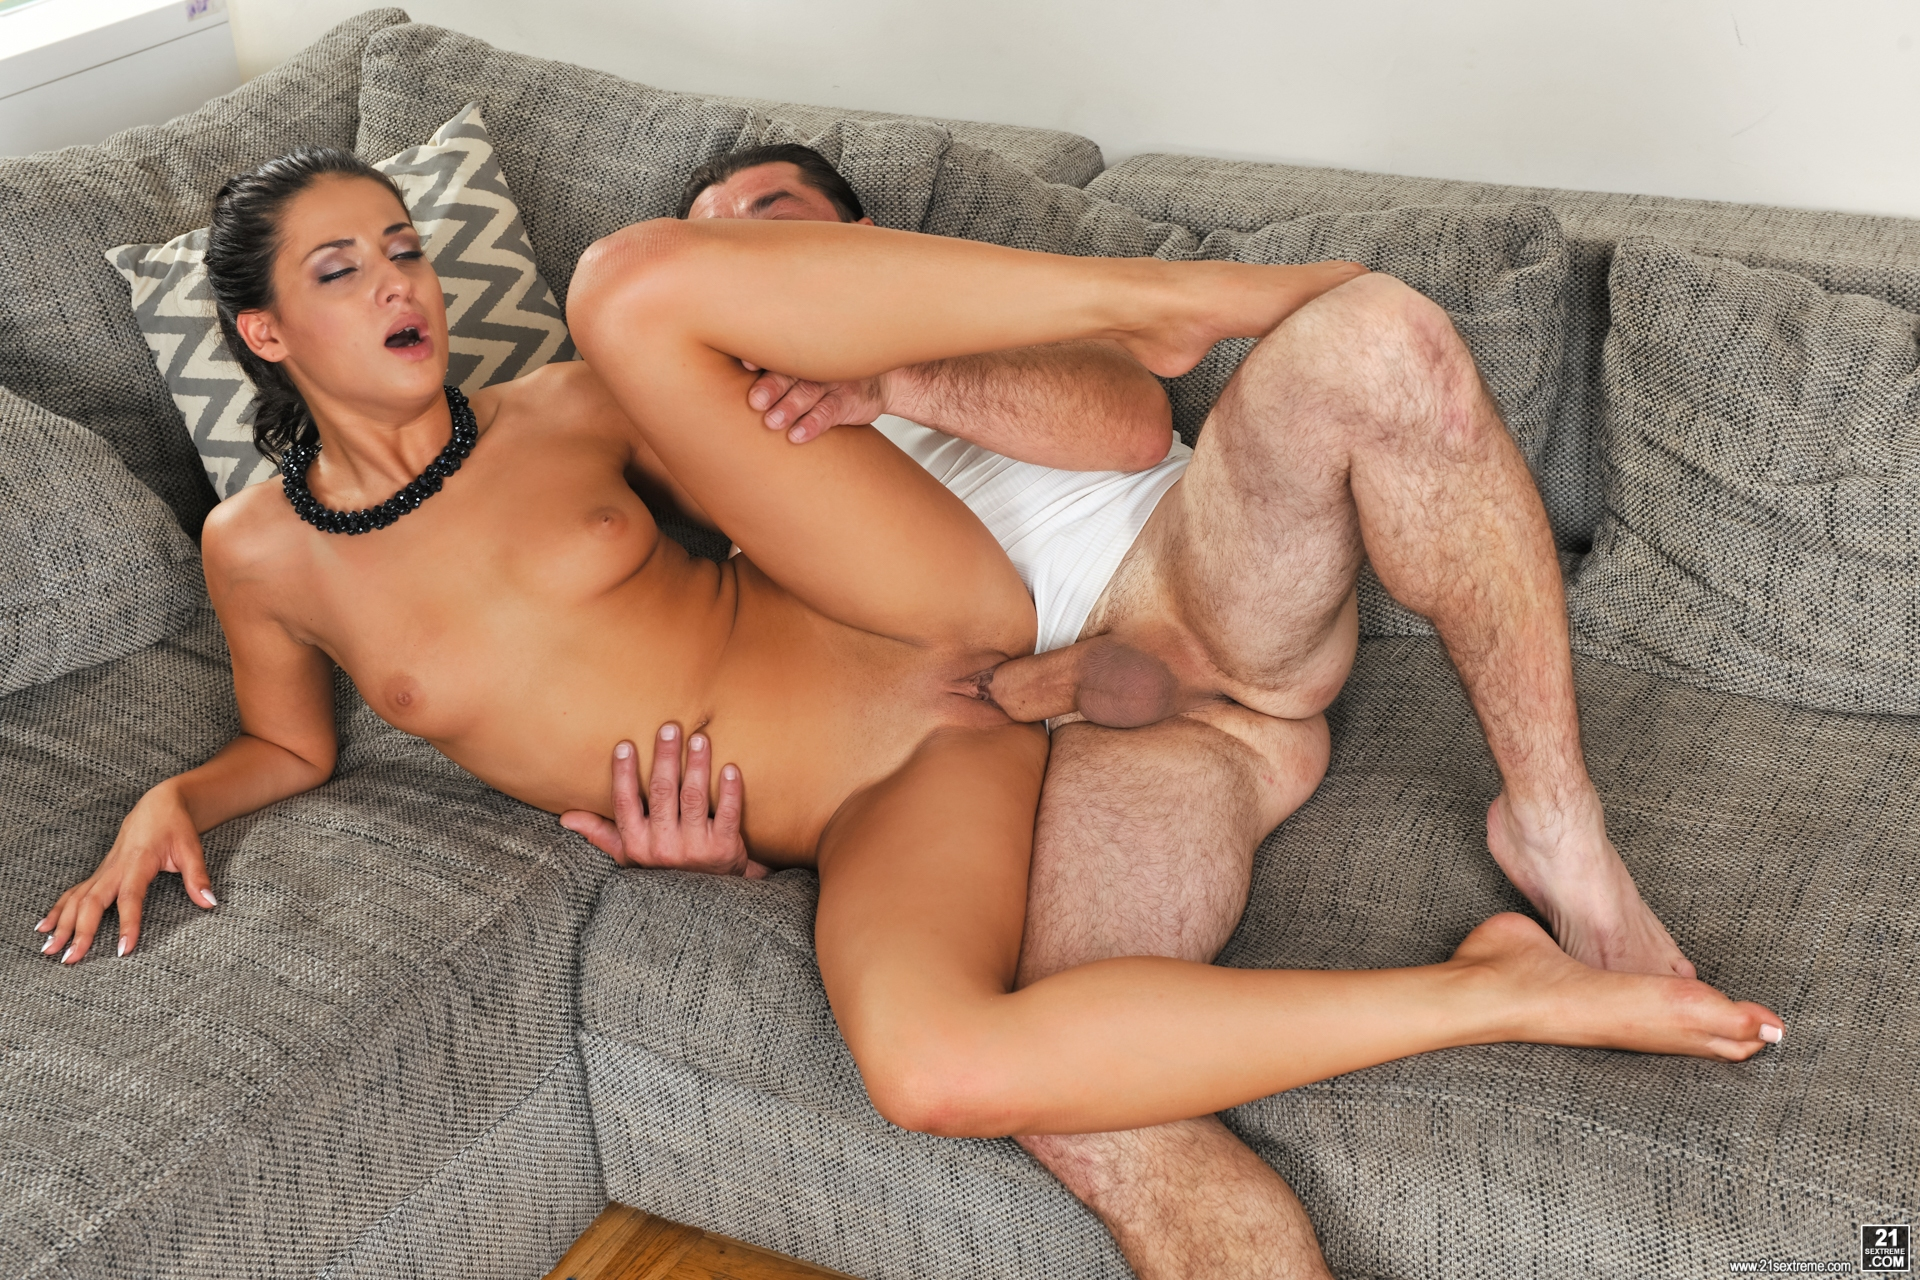 Latina Girl White Guy  Most Sexy Porn  Free Hd  4K Photos-5354